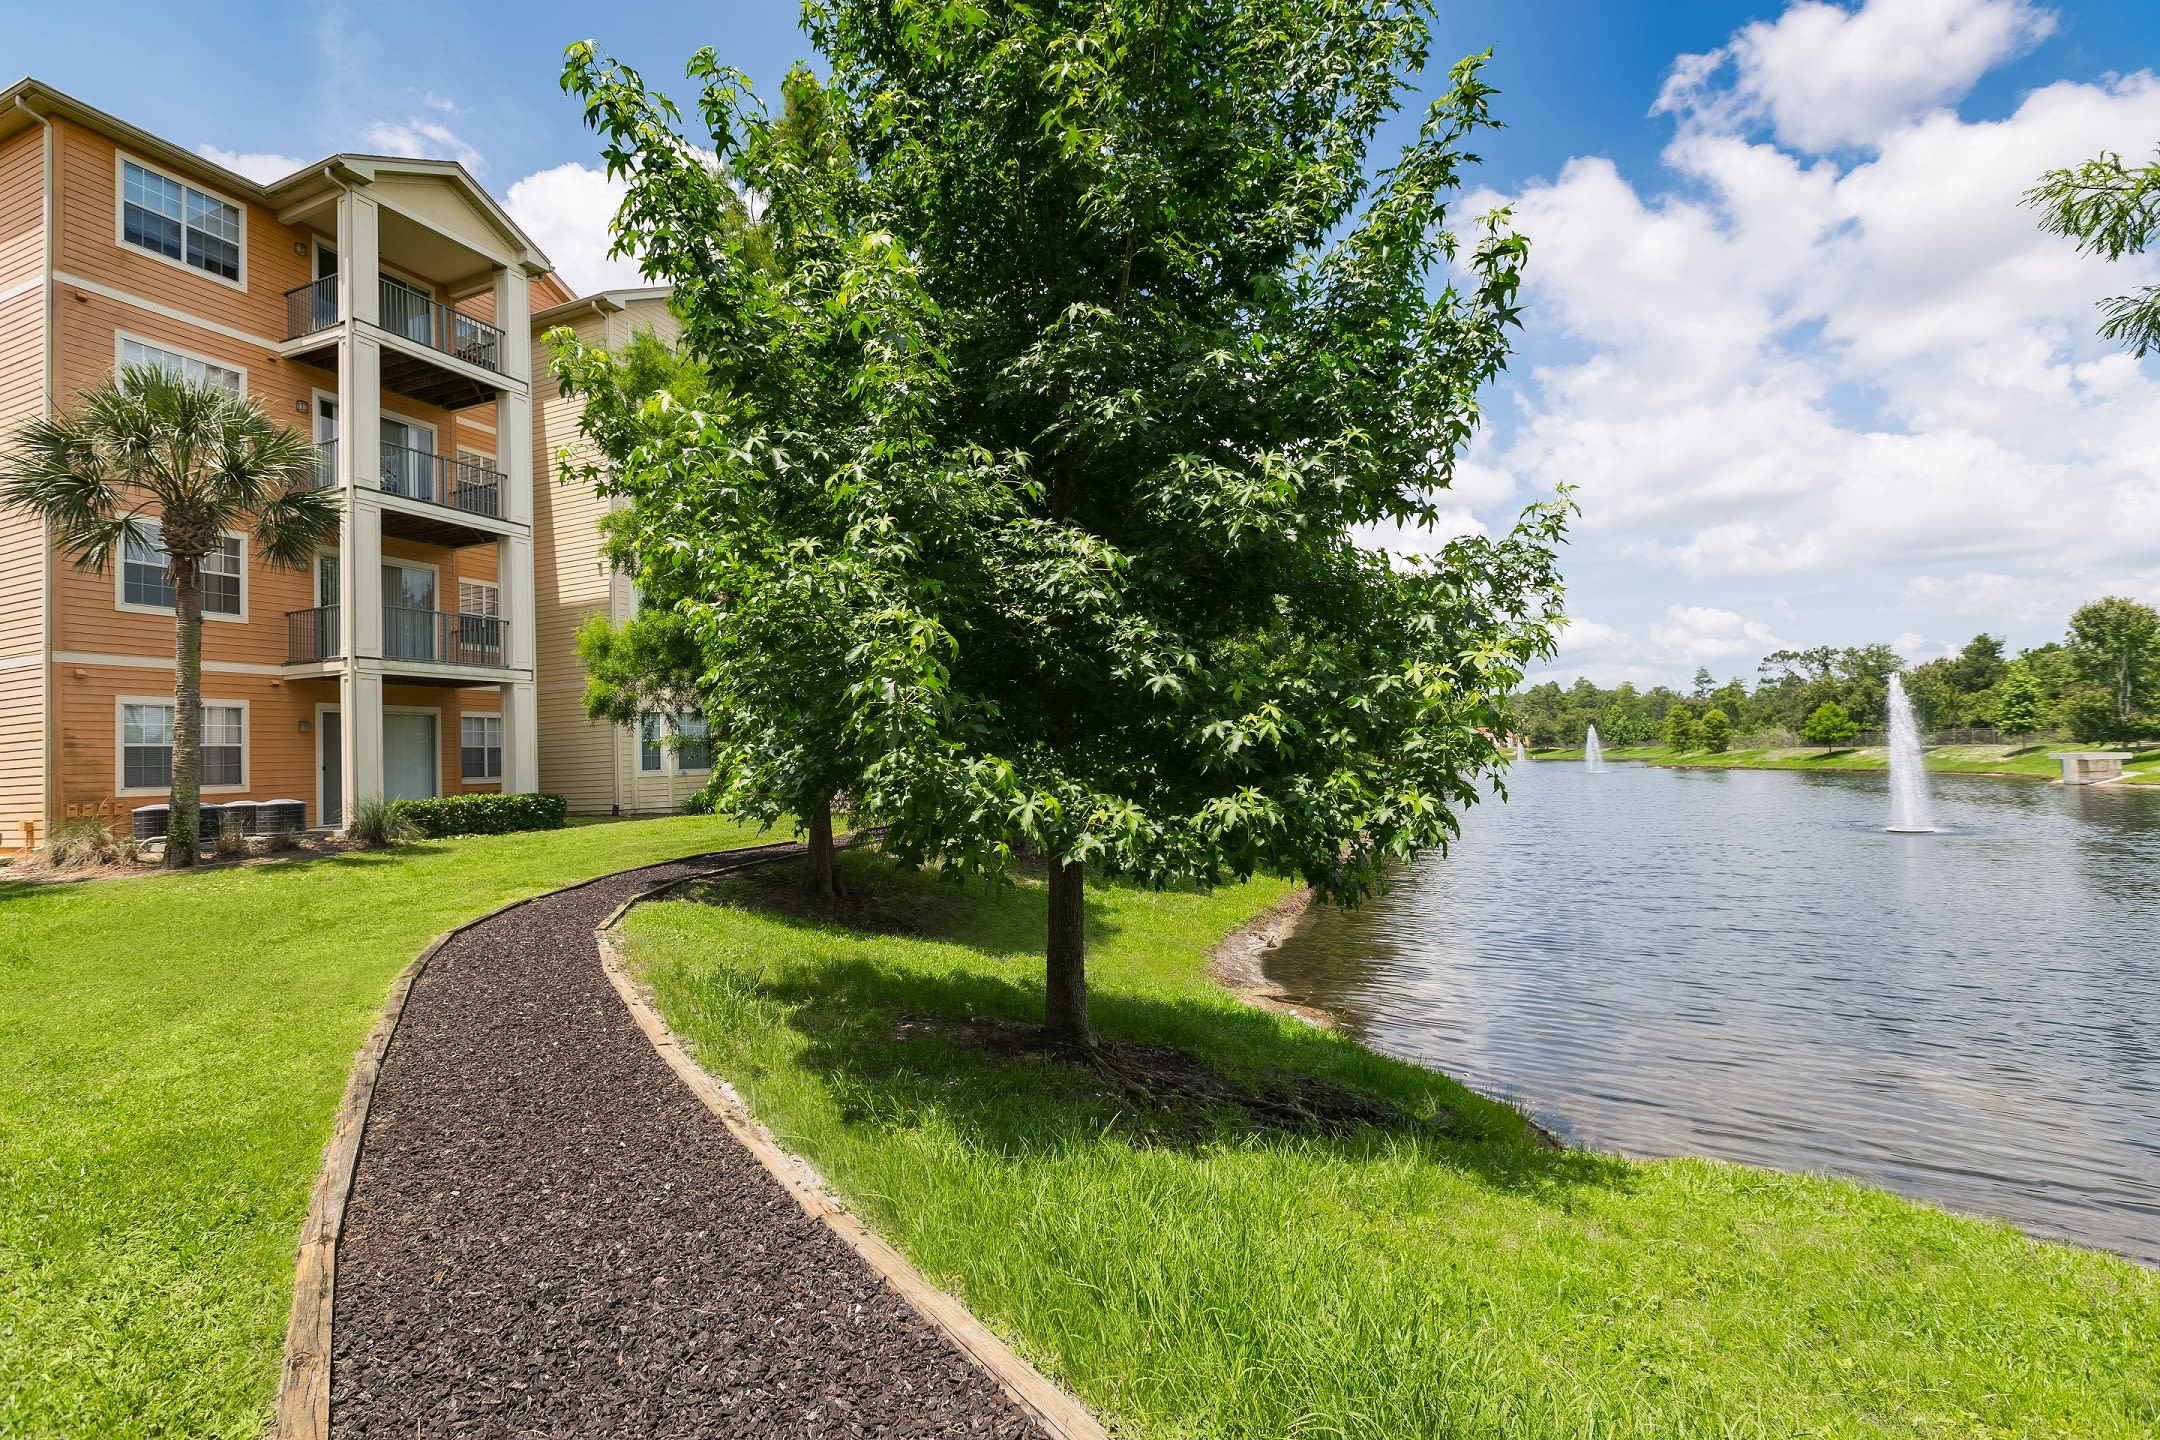 Lake view at The Aspect in Kissimmee, Florida